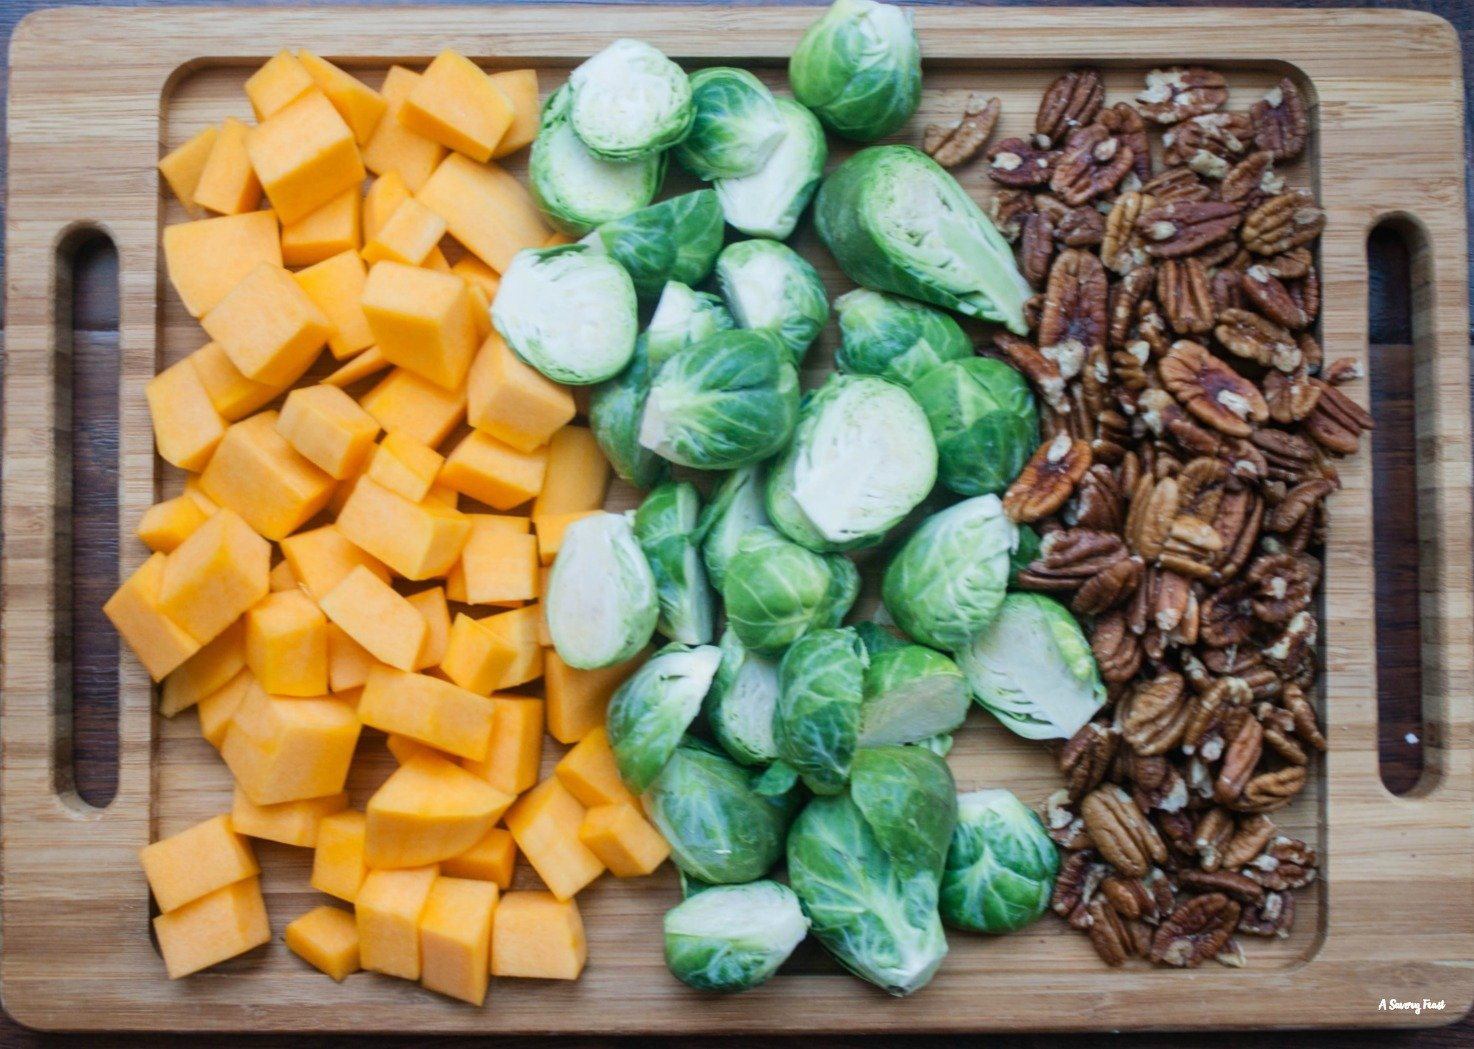 Healthy dinner idea with butternut squash, brussels sprouts and pecans.